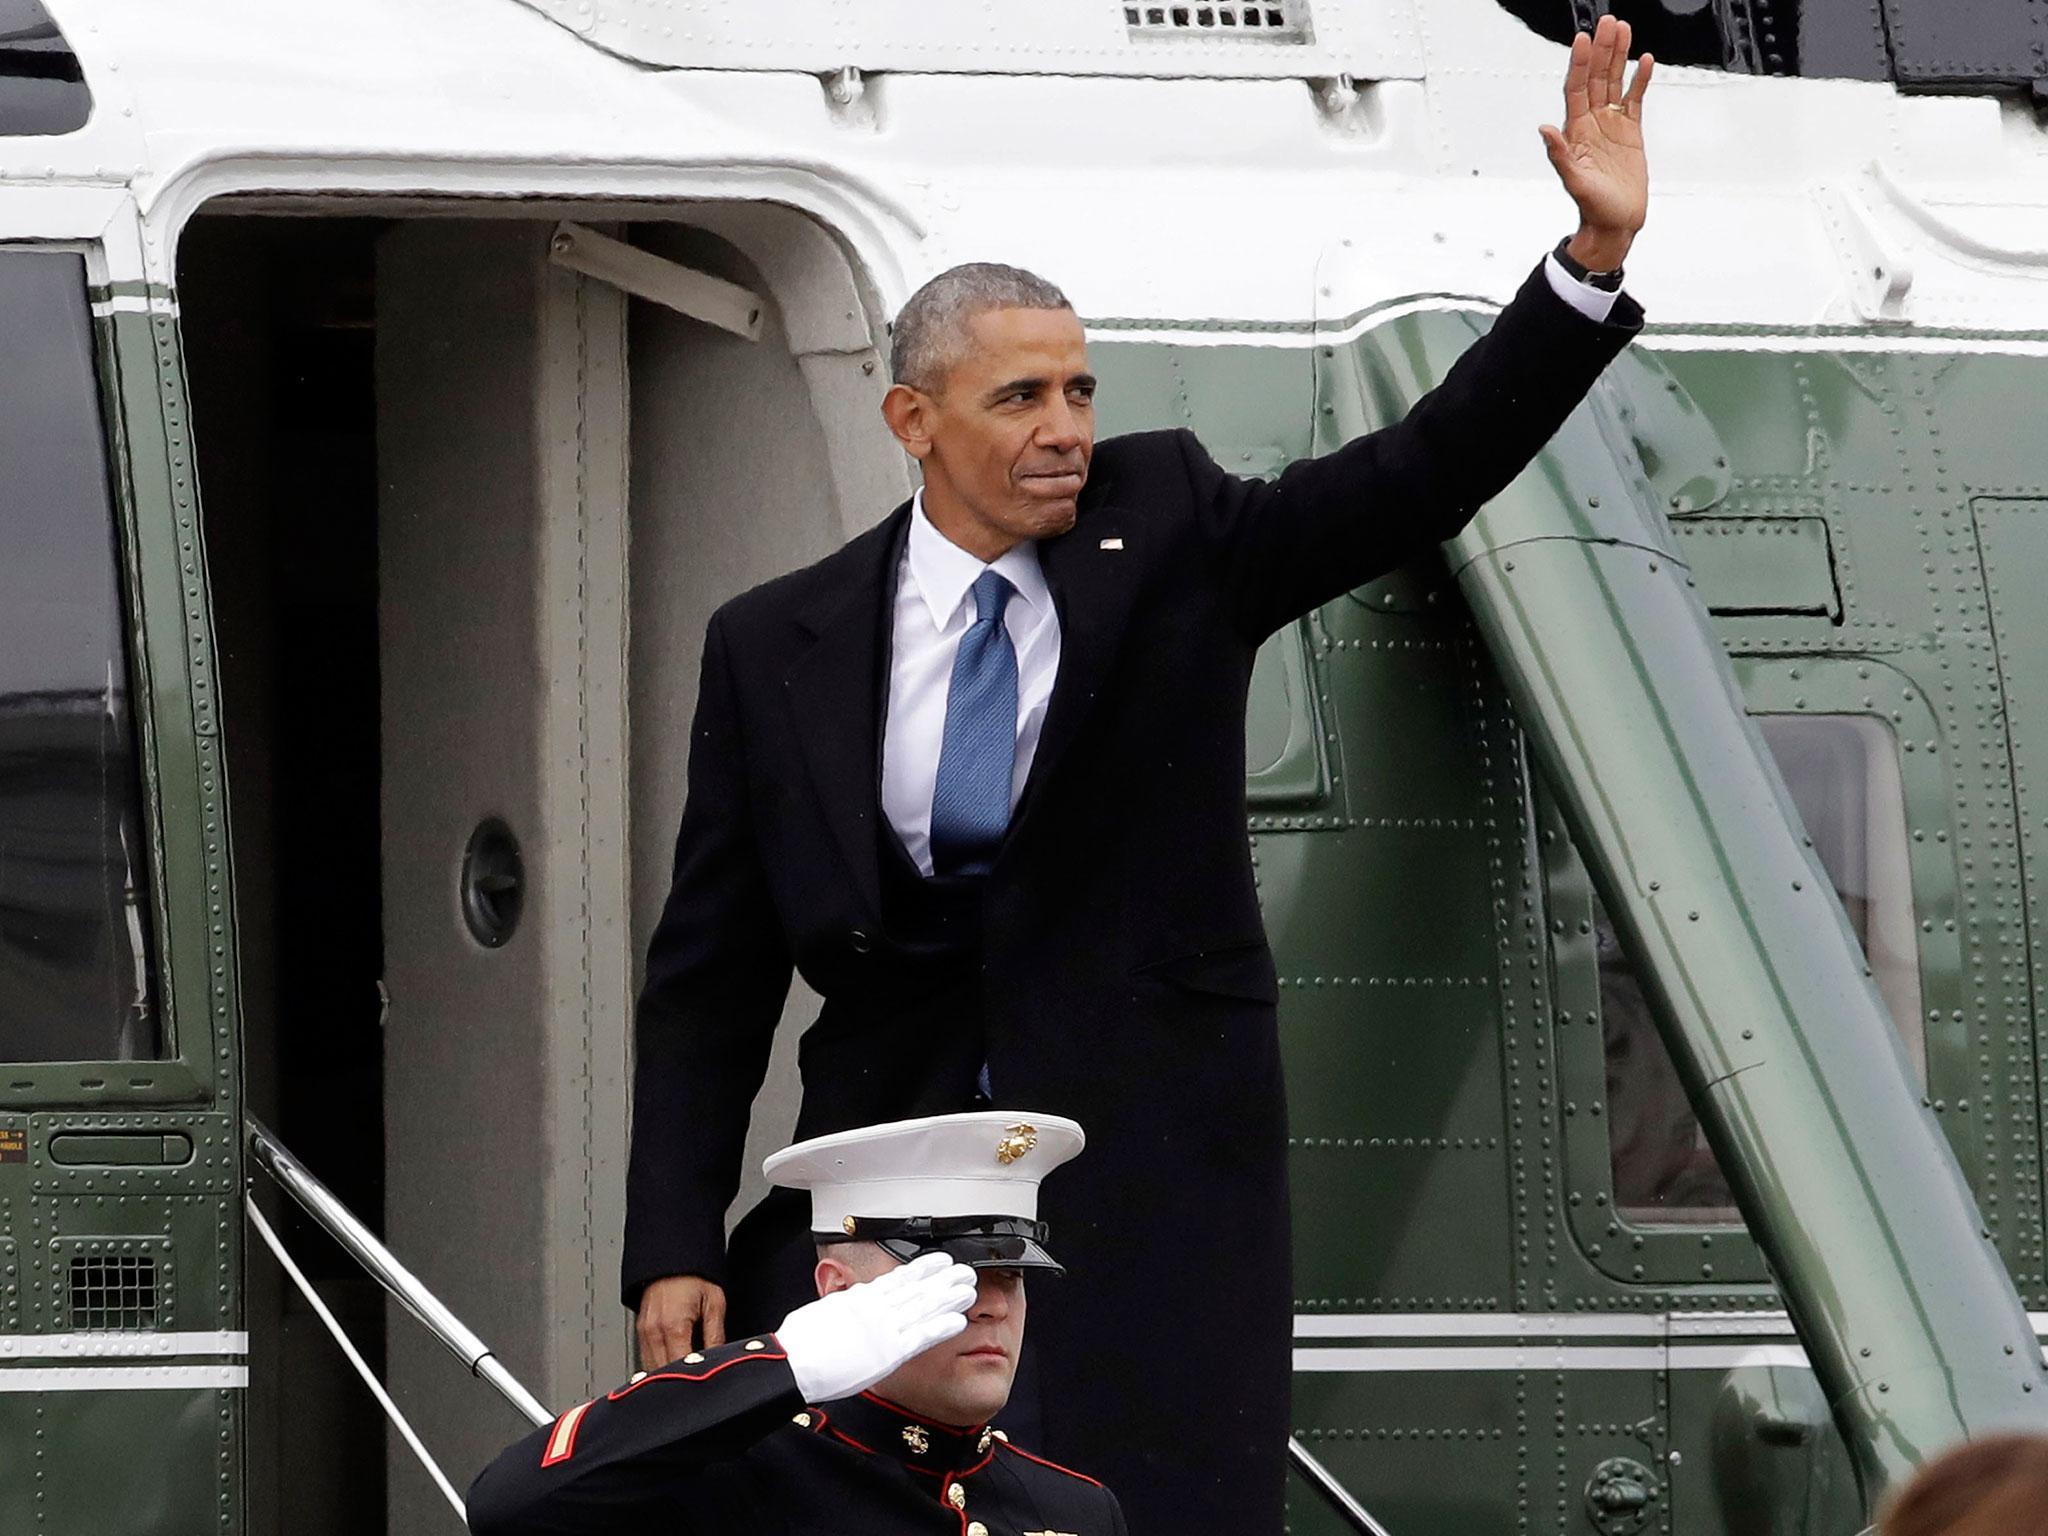 Barack Obama to give first post-White House speech from Chicago today | The Independent